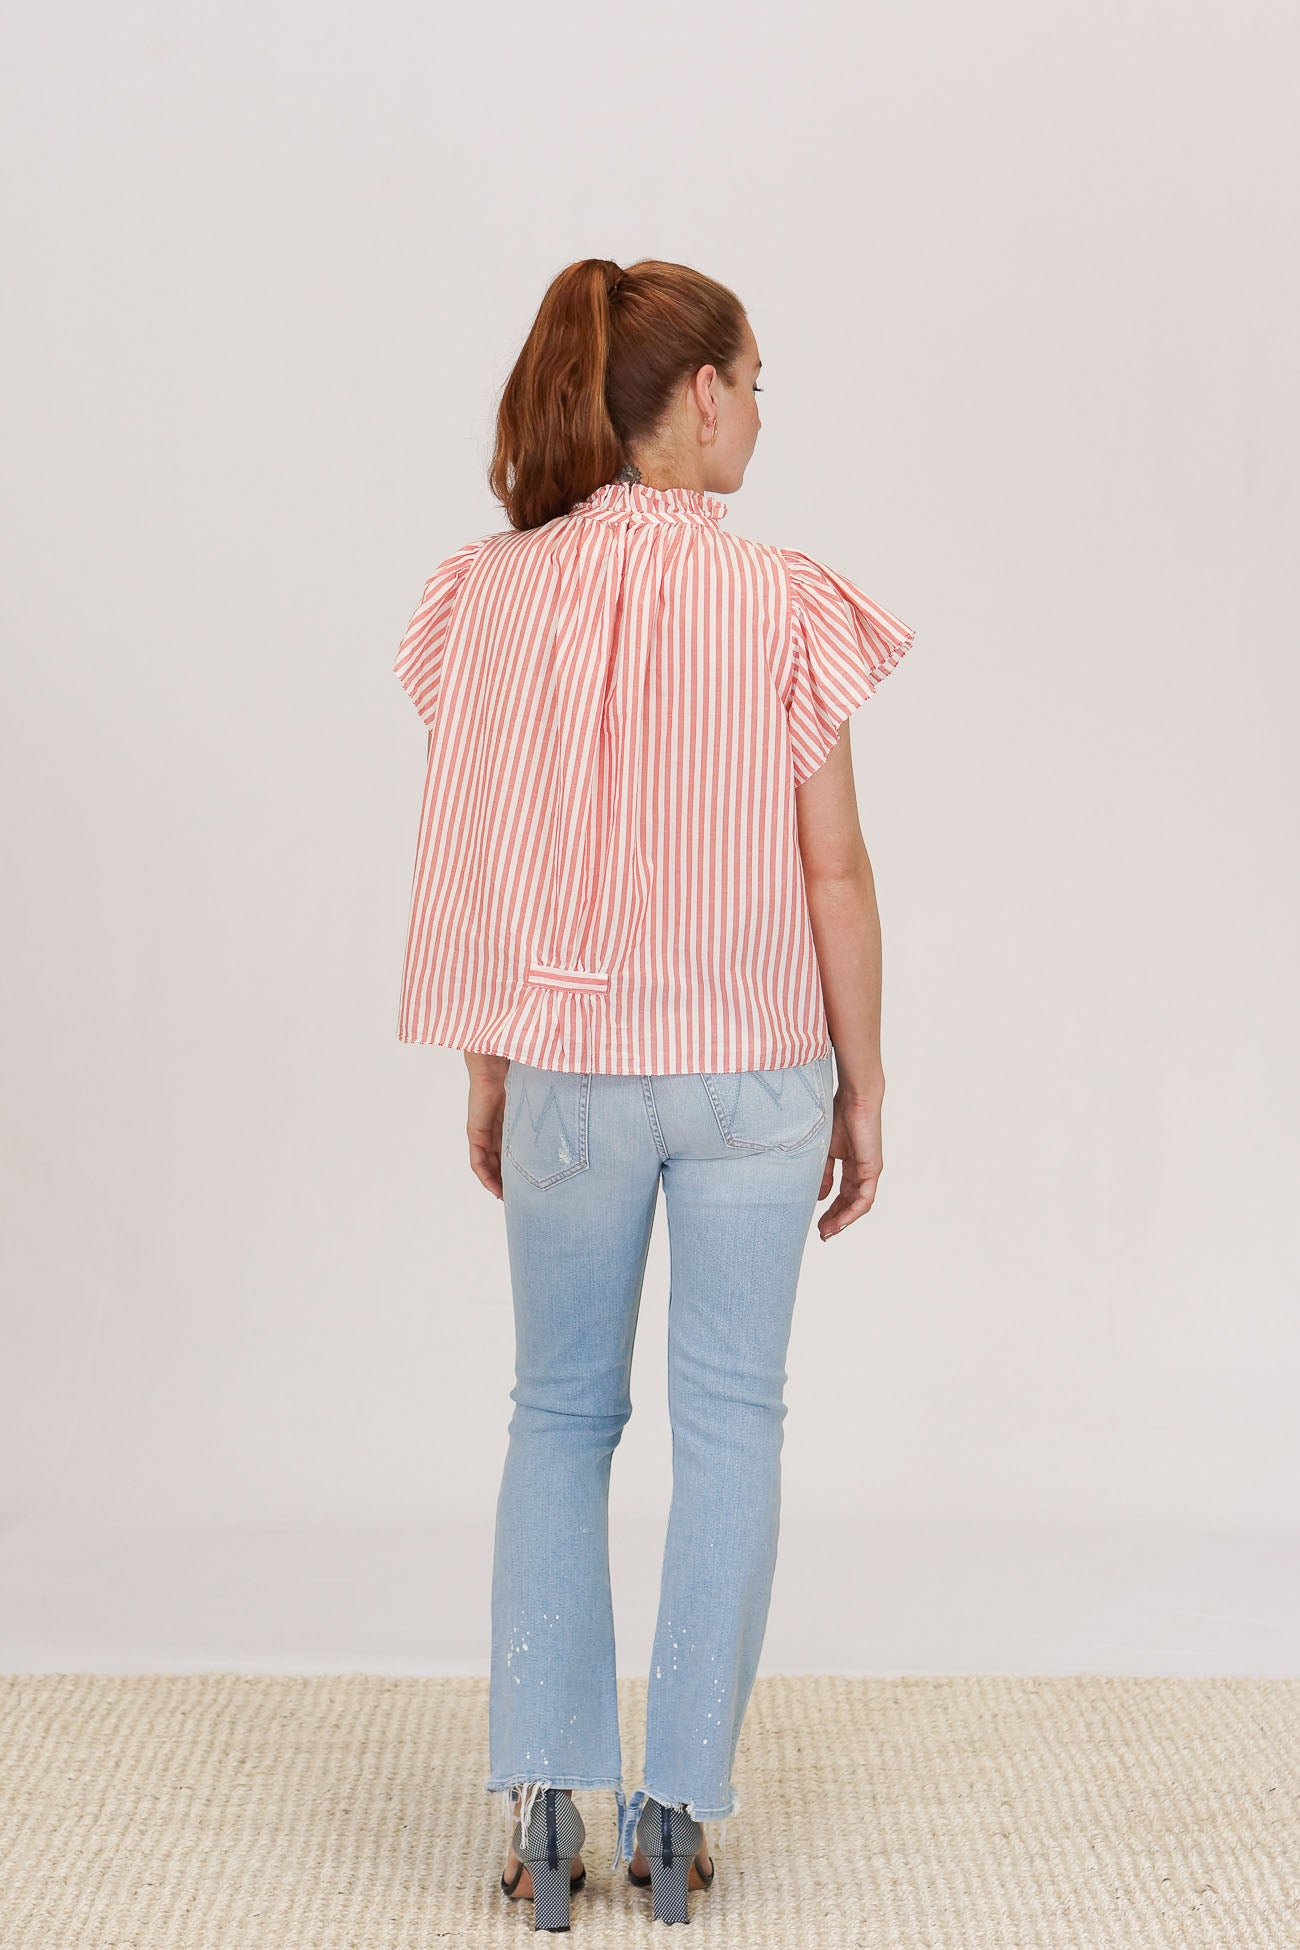 Trovata Carla High Neck Blouse in Red and White Stripe